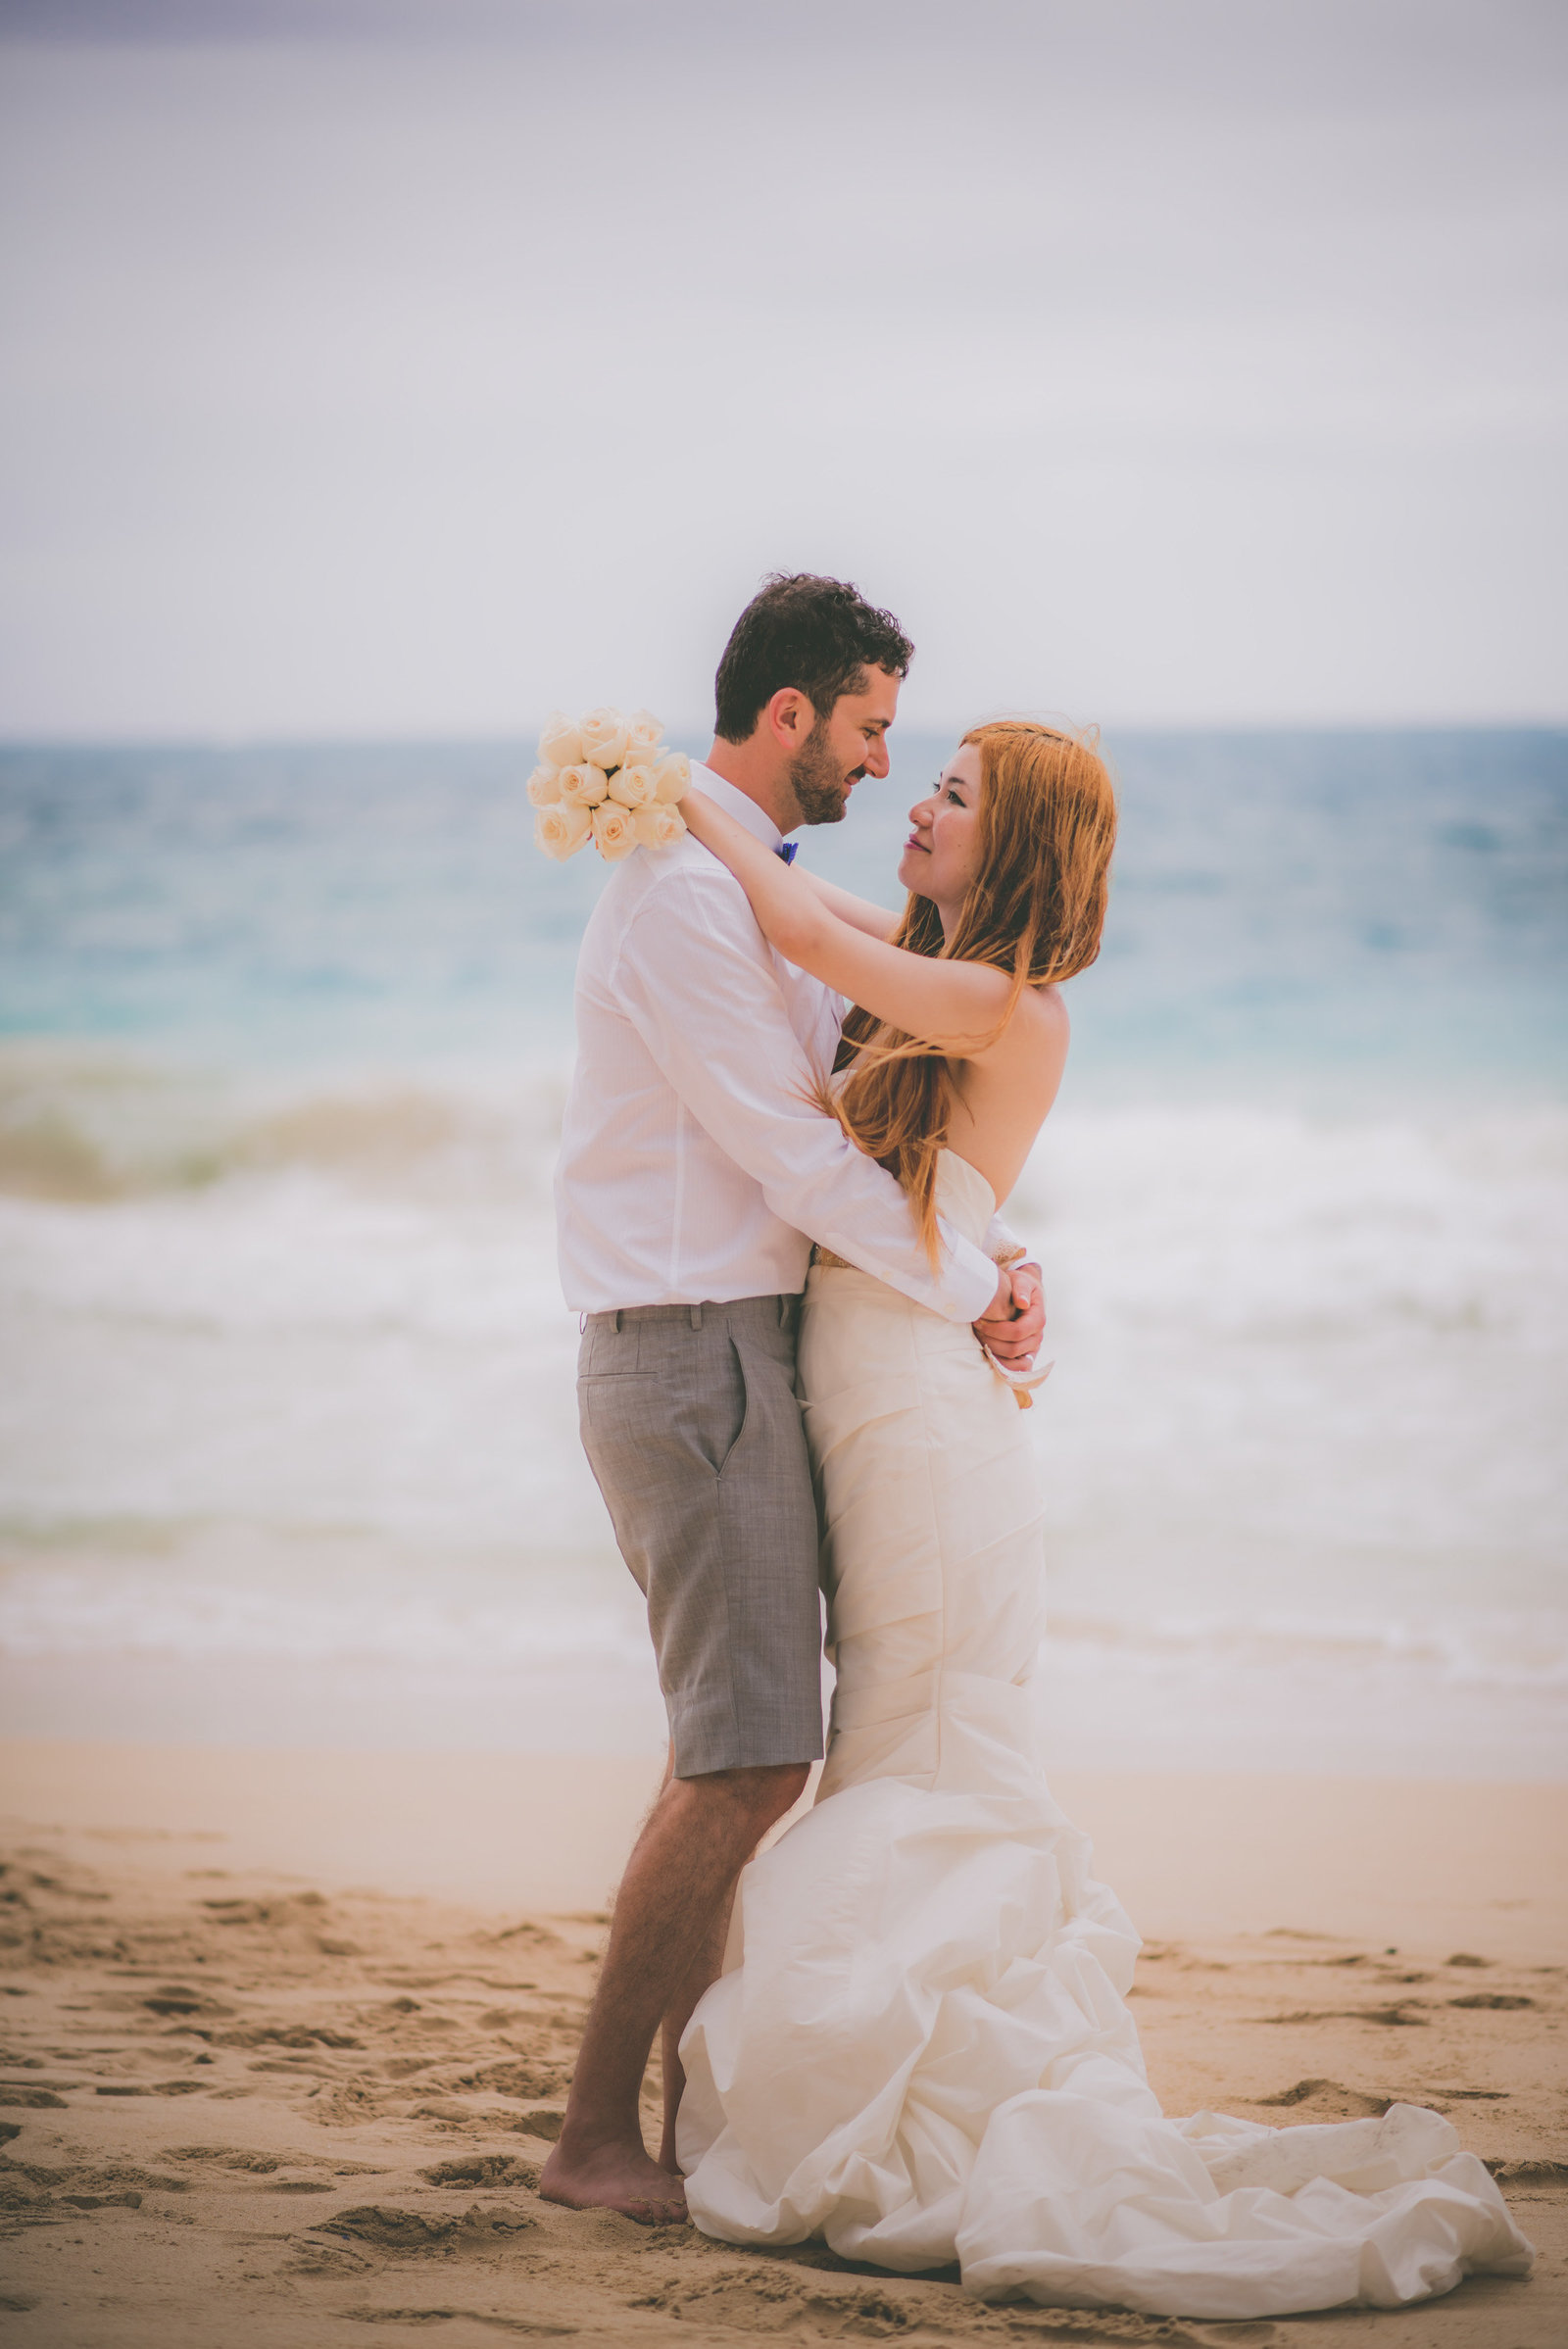 Bride and groom stare at one another on Oahu beach.